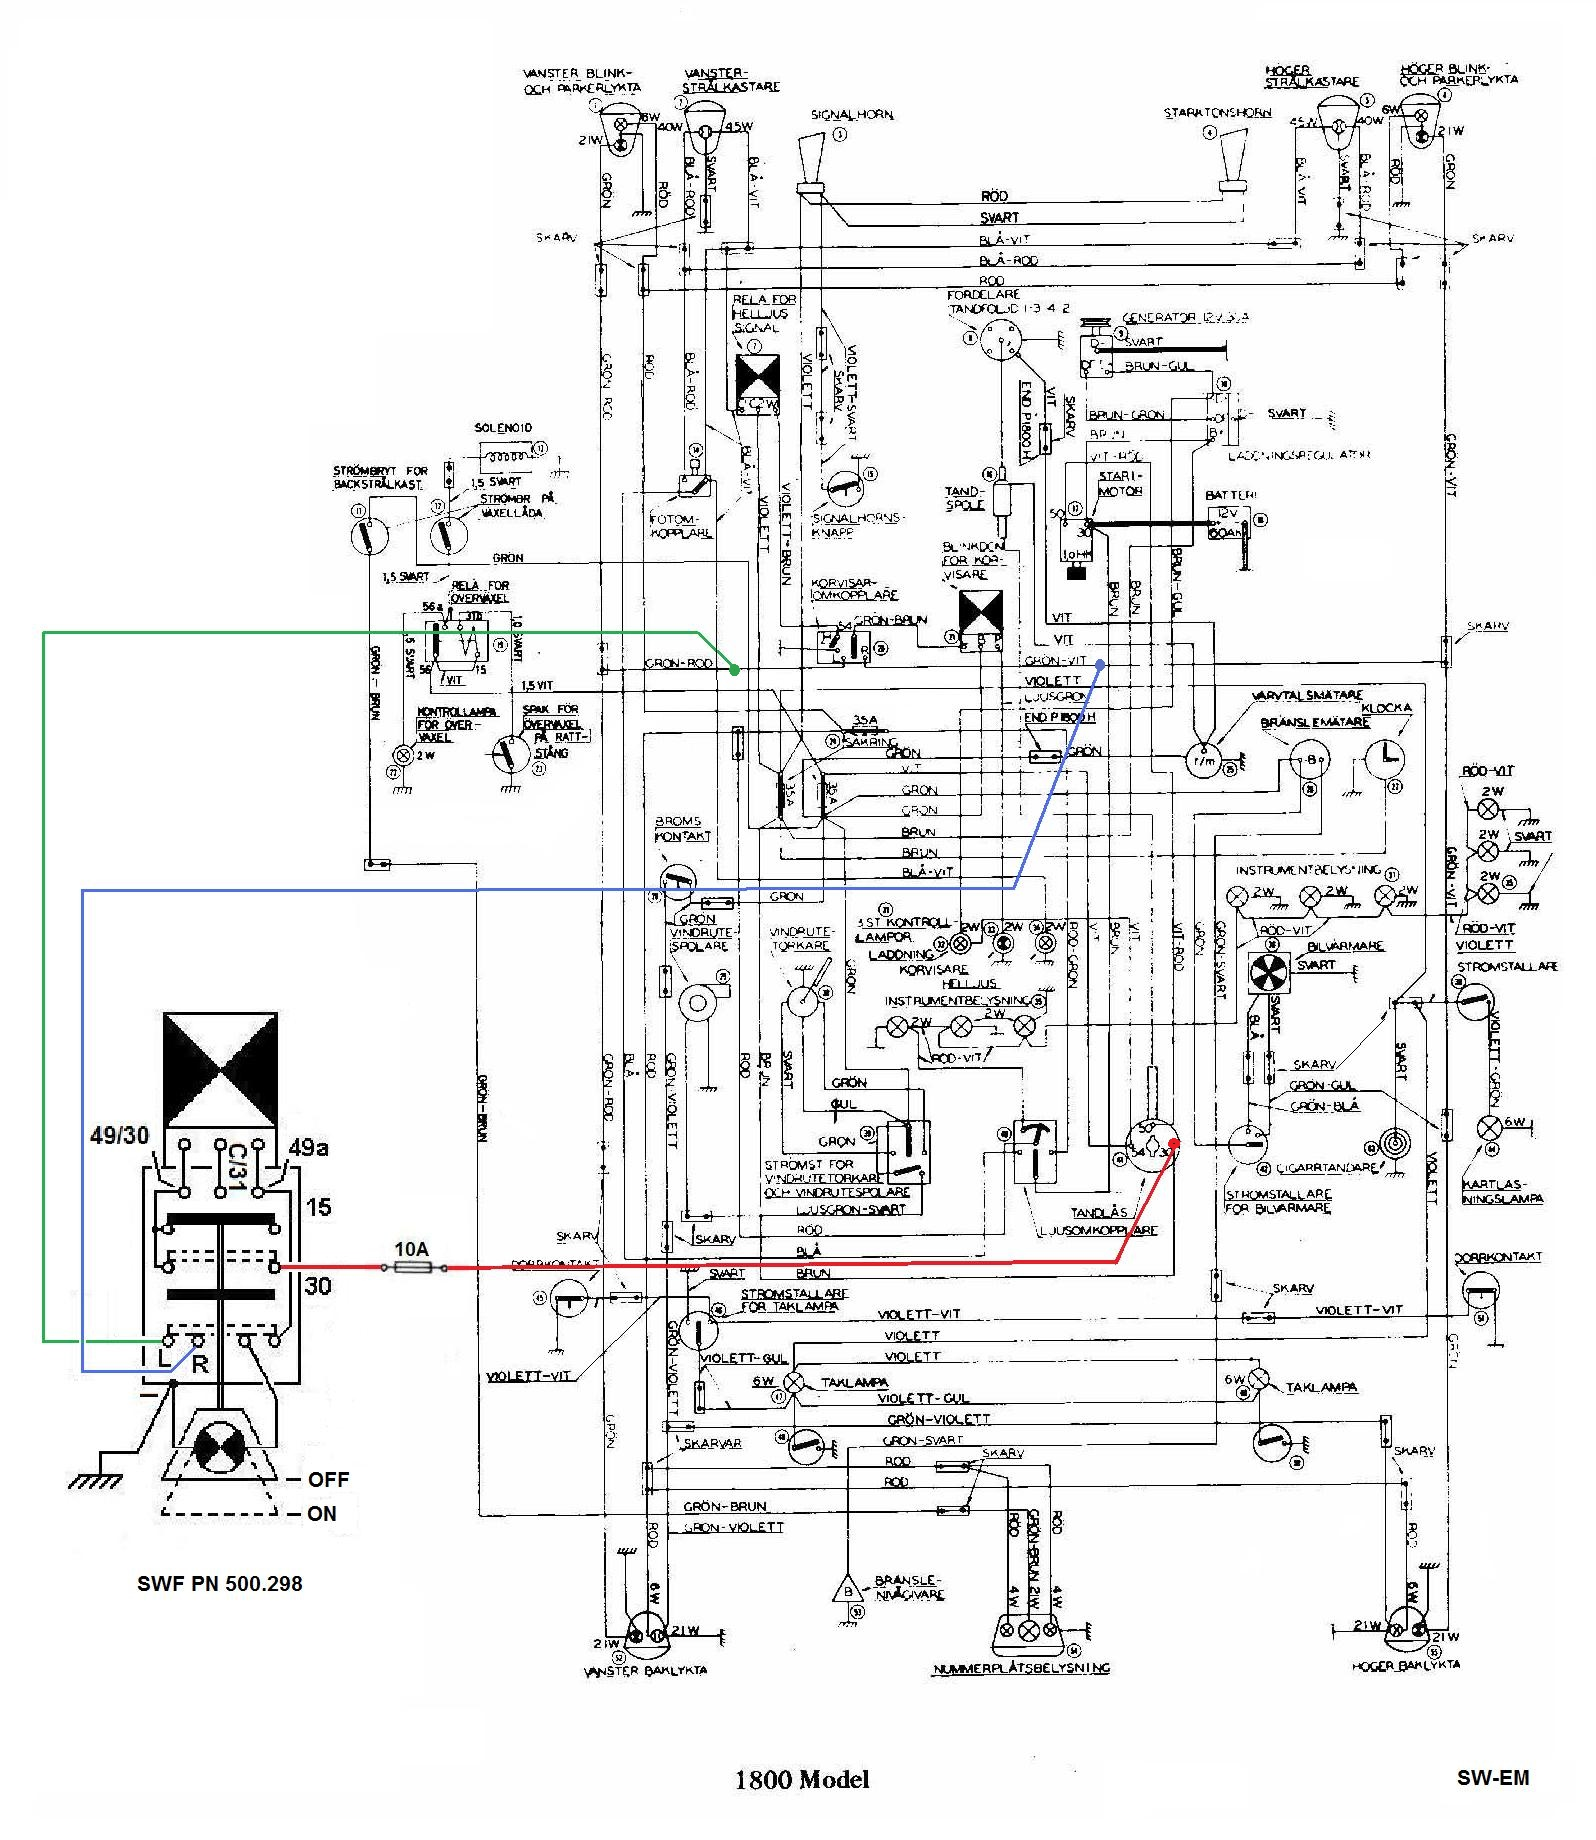 hazard flasher switch wiring diagram